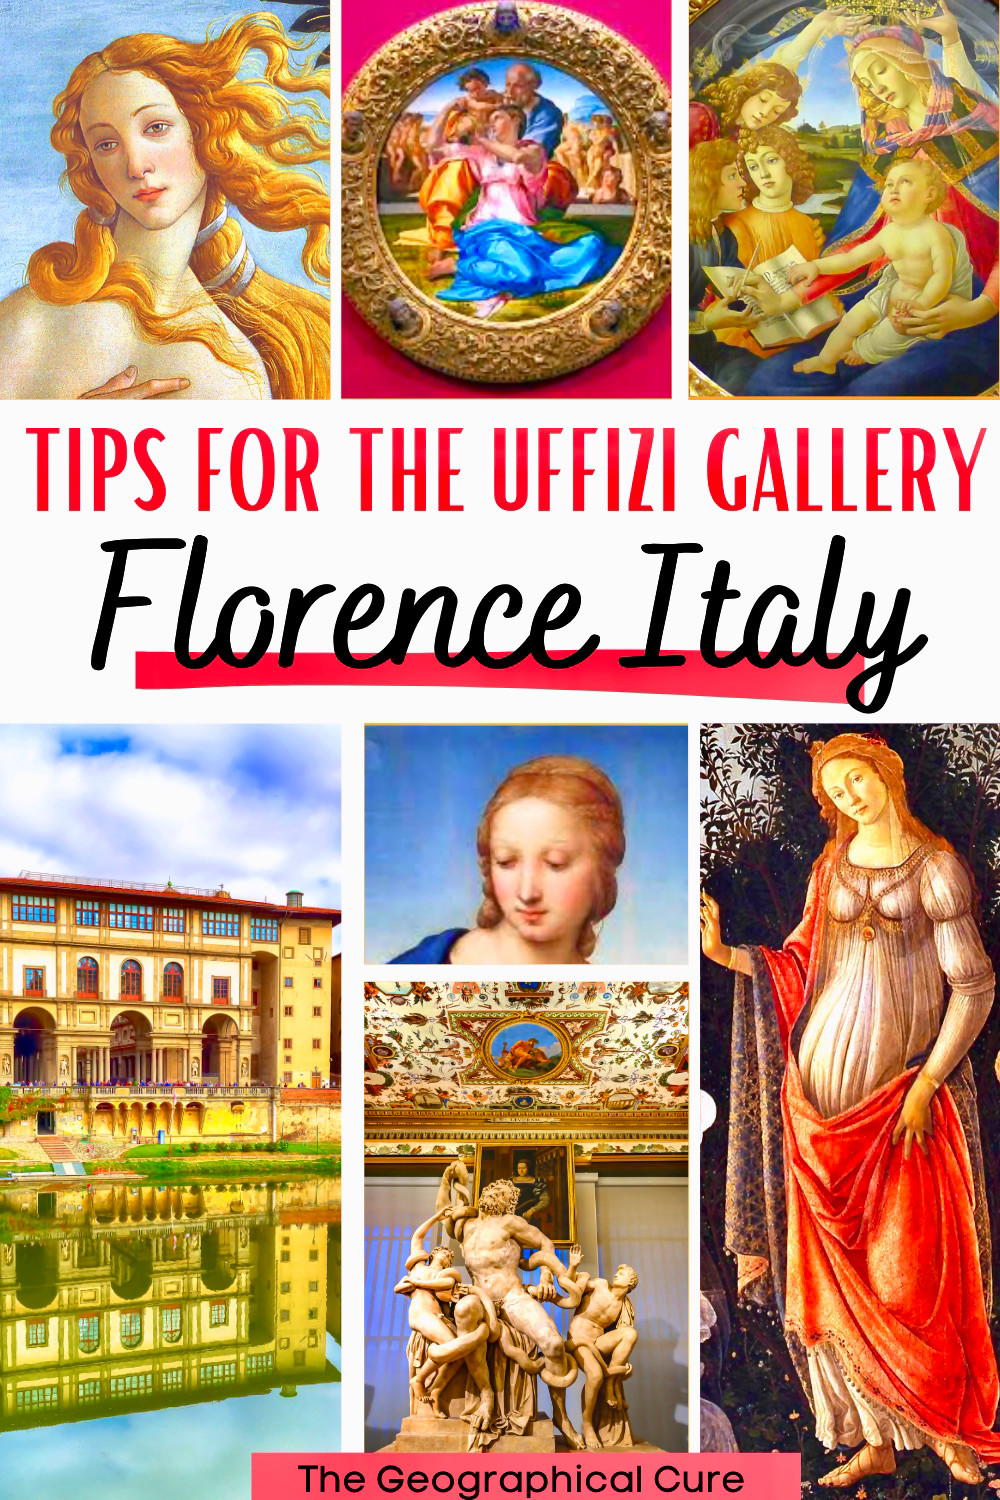 best must know tips for visiting the Uffizi Gallery